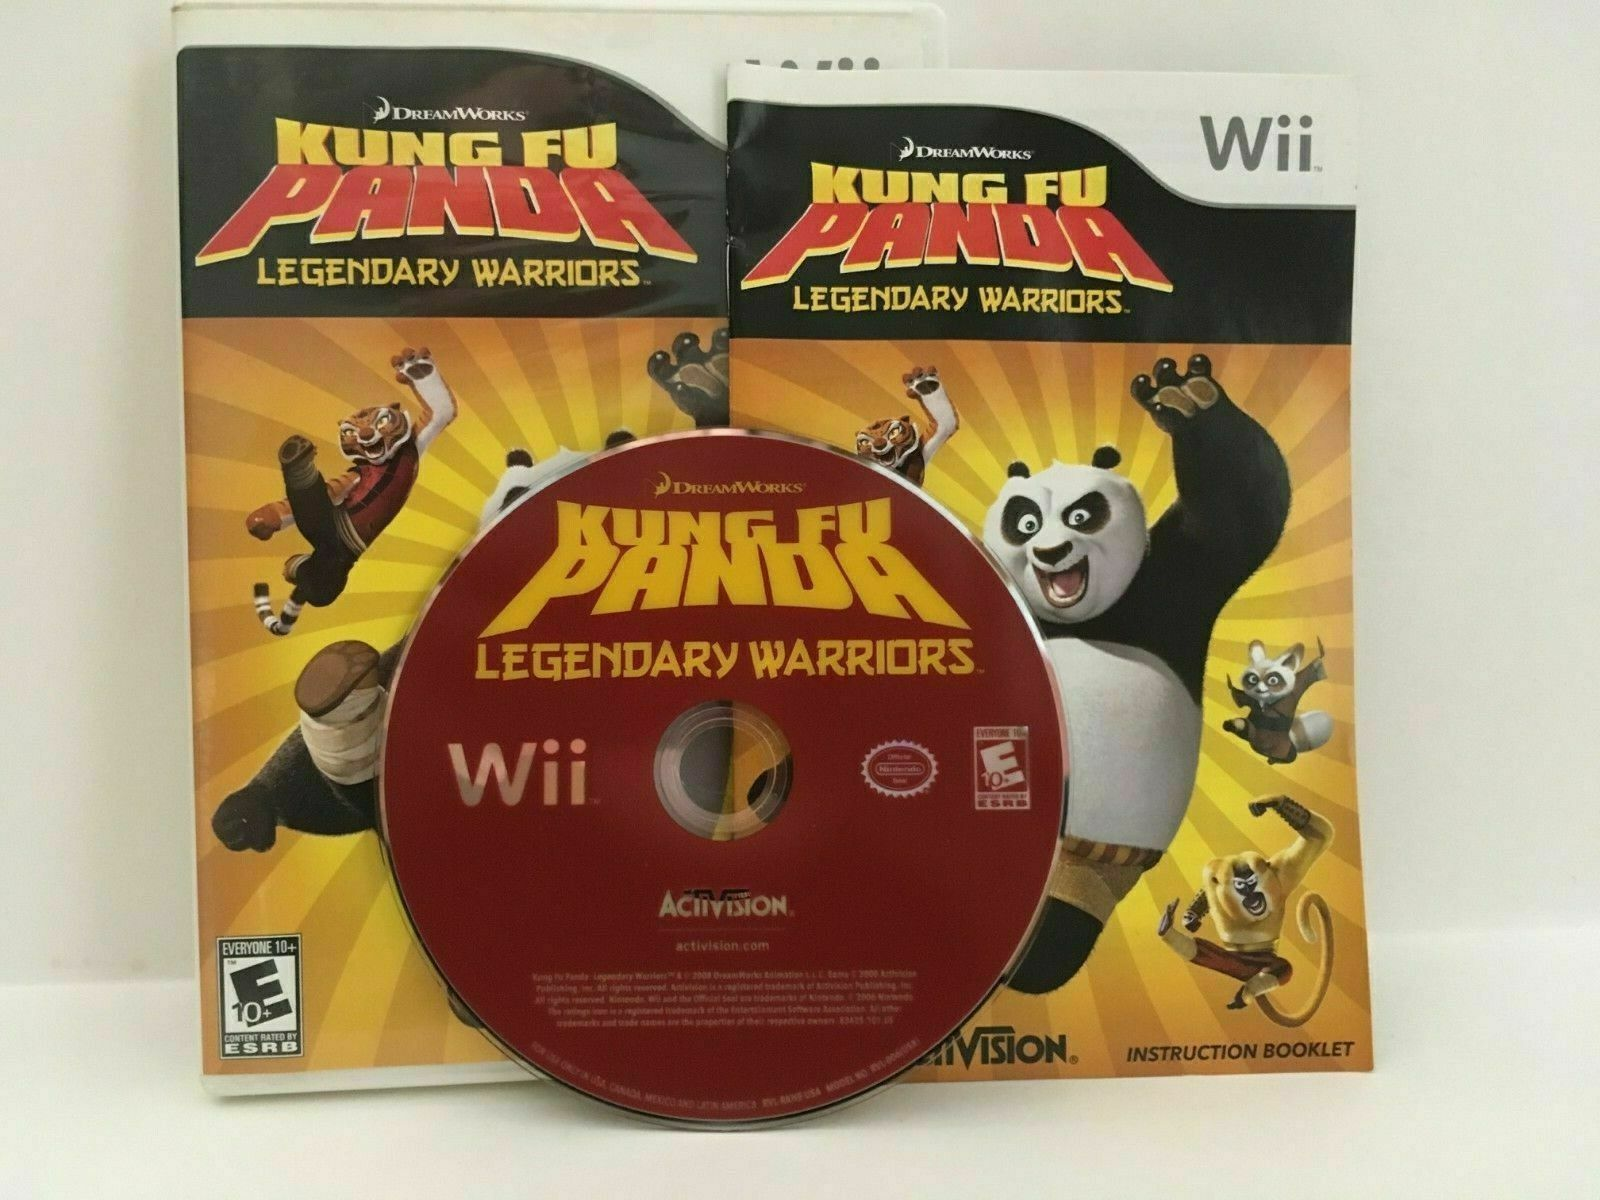 Primary image for Kung Fu Panda: Legendary Warriors (Nintendo Wii, 2008)